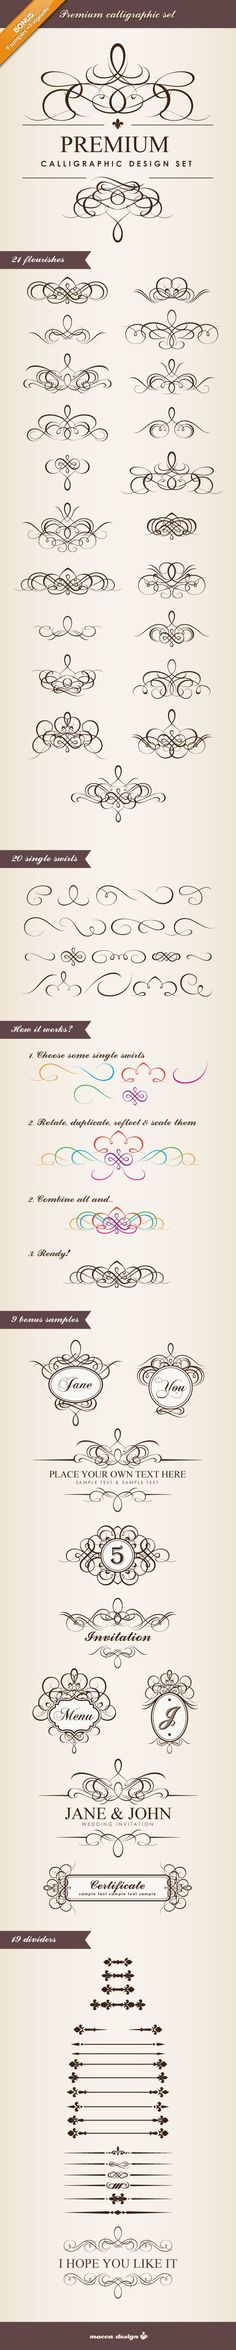 Premium Calligraphic Design Set by Mocca Design. Includes…